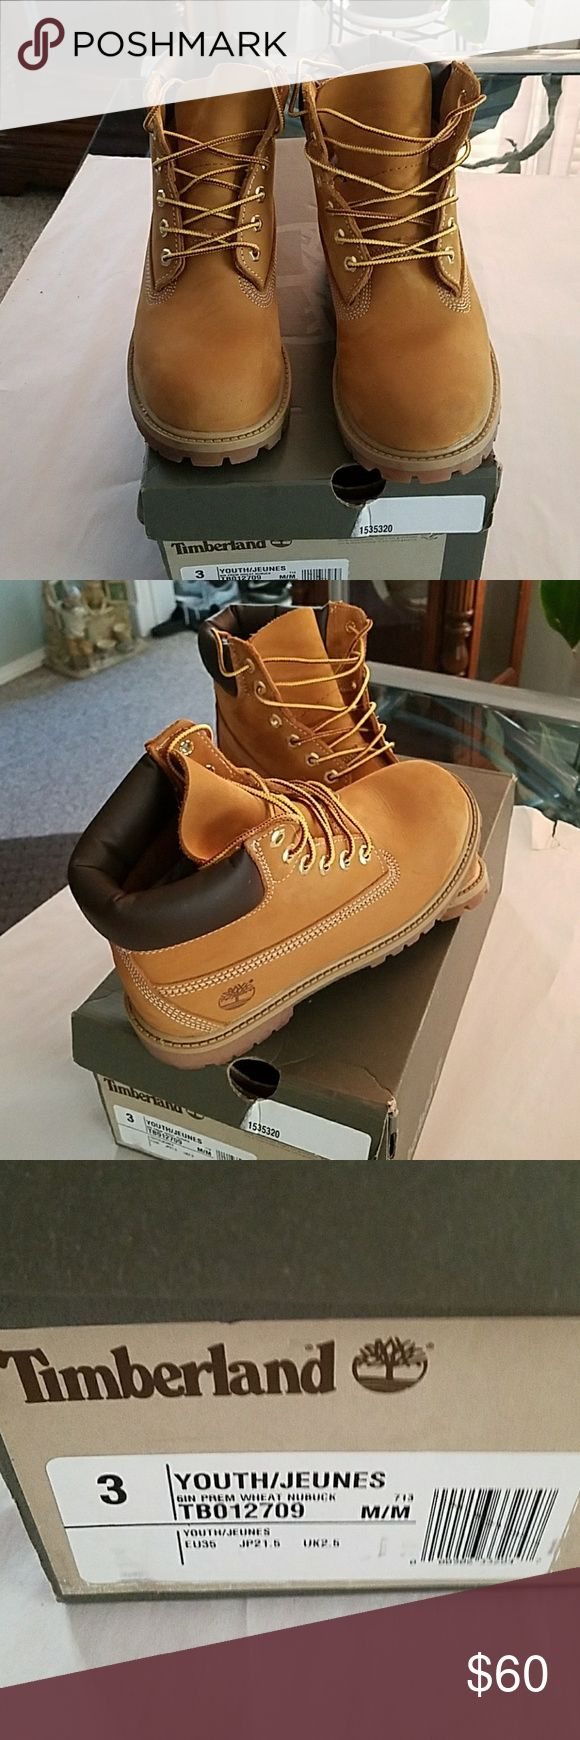 Timberland youth boots size 3 I  original bos In superb condition. Timberland Shoes Boots